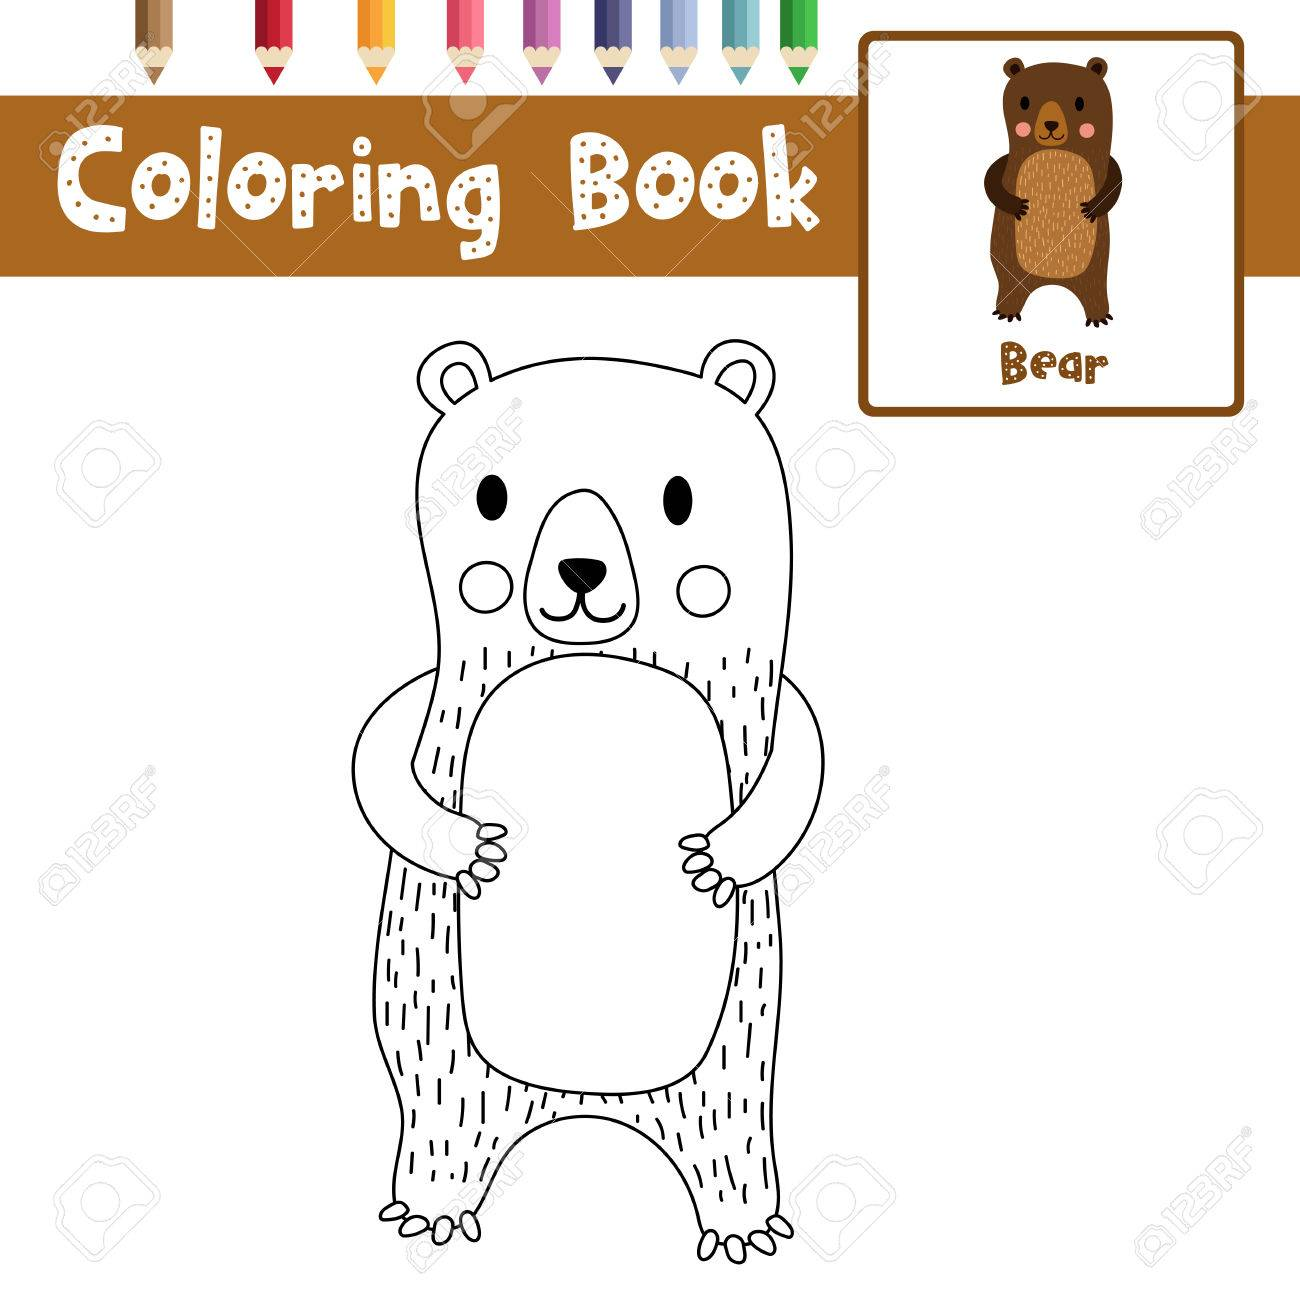 Coloring Page Of Standing Bear Animals For Preschool Kids Activity  Educational Worksheet. Vector Illustration.